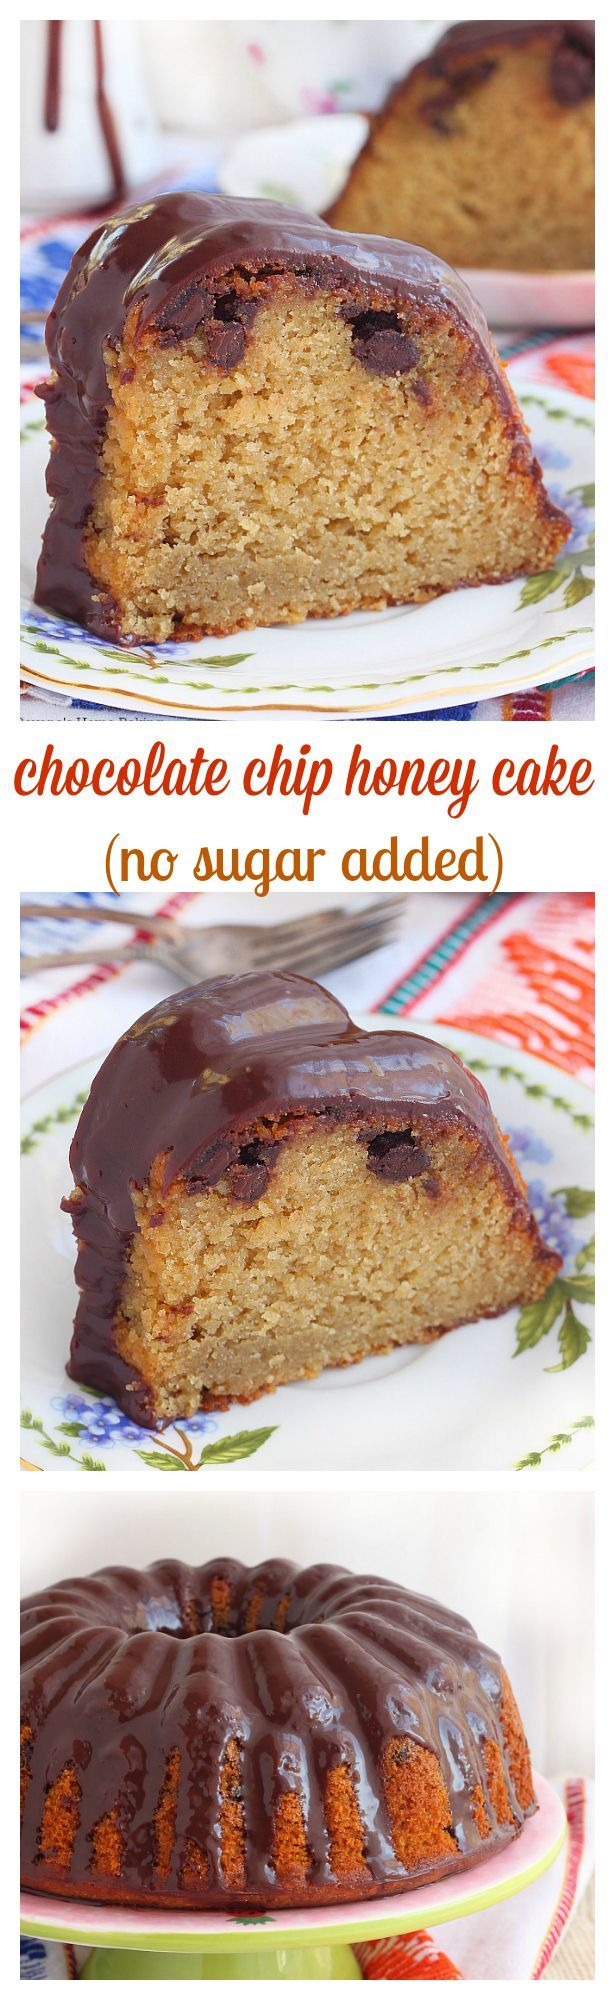 Extra moist and sweet, this chocolate chip honey cake is so flavorful and so easy to make. Dress it up with a thin layer of chocolate ganache and you have an irresistible snack cake!